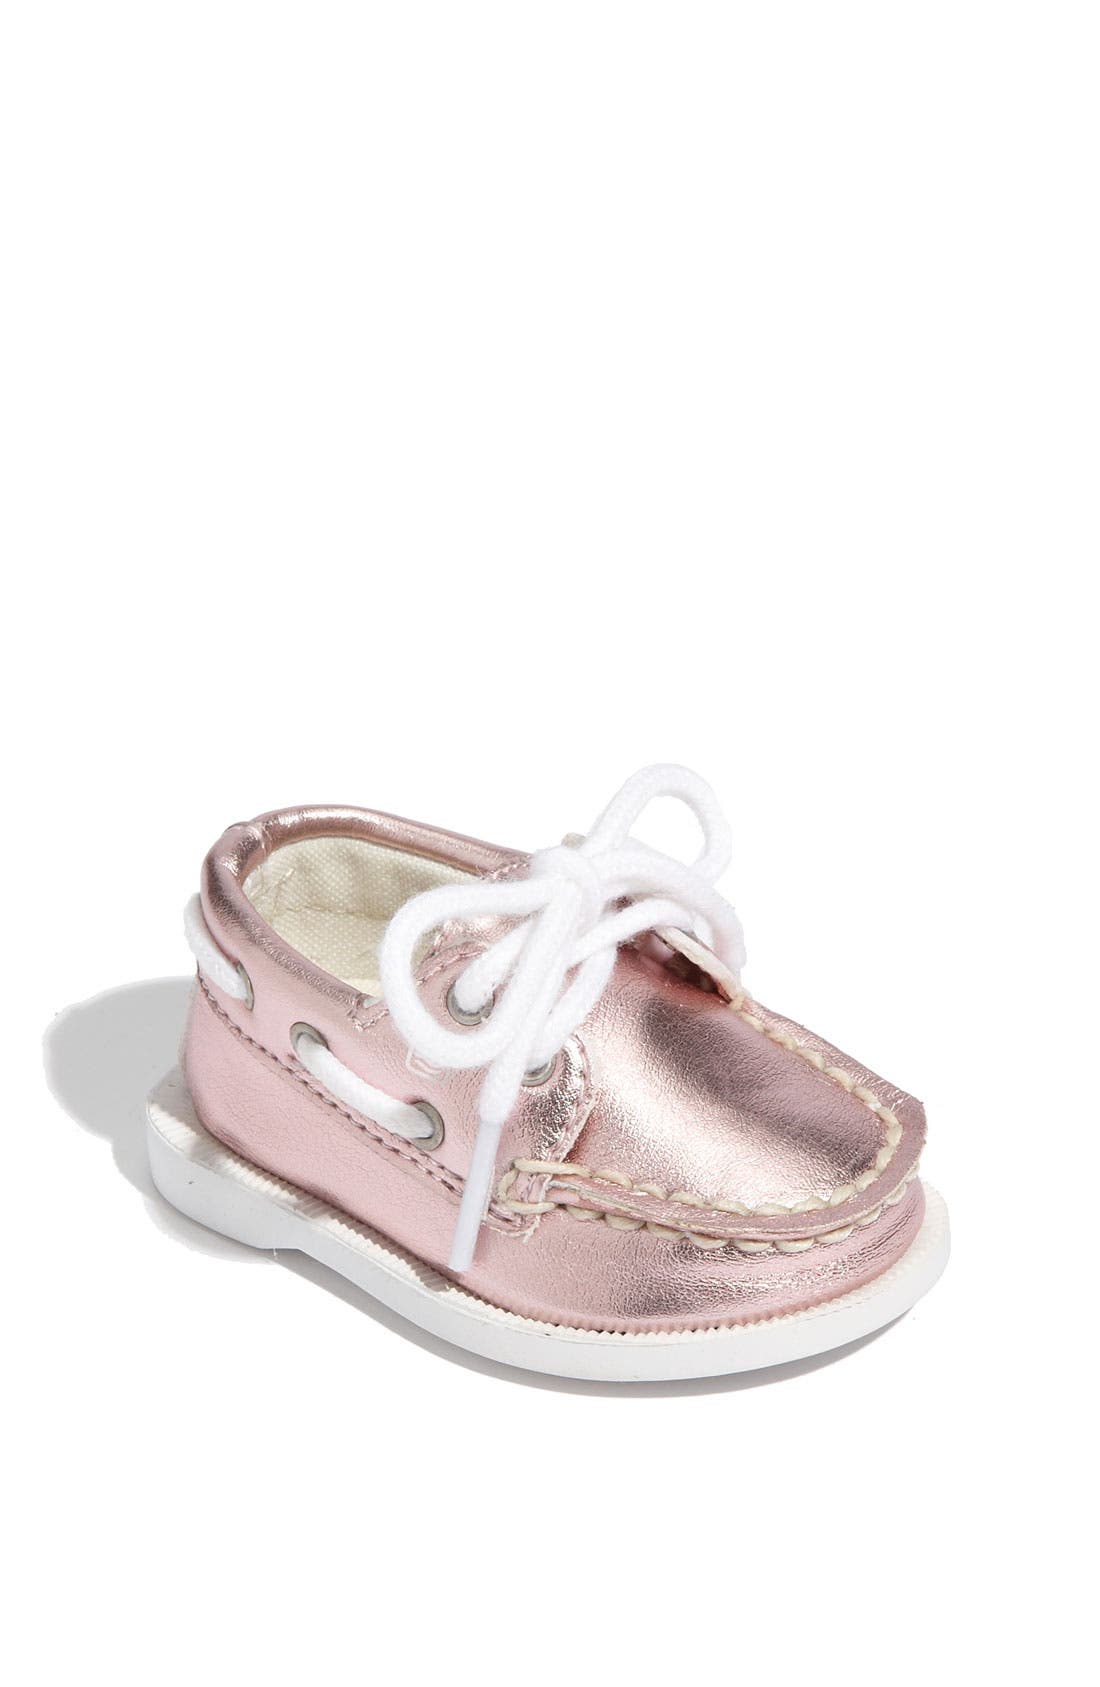 Main Image - Sperry Top-Sider® 'Authentic Original' Crib Shoe (Baby)